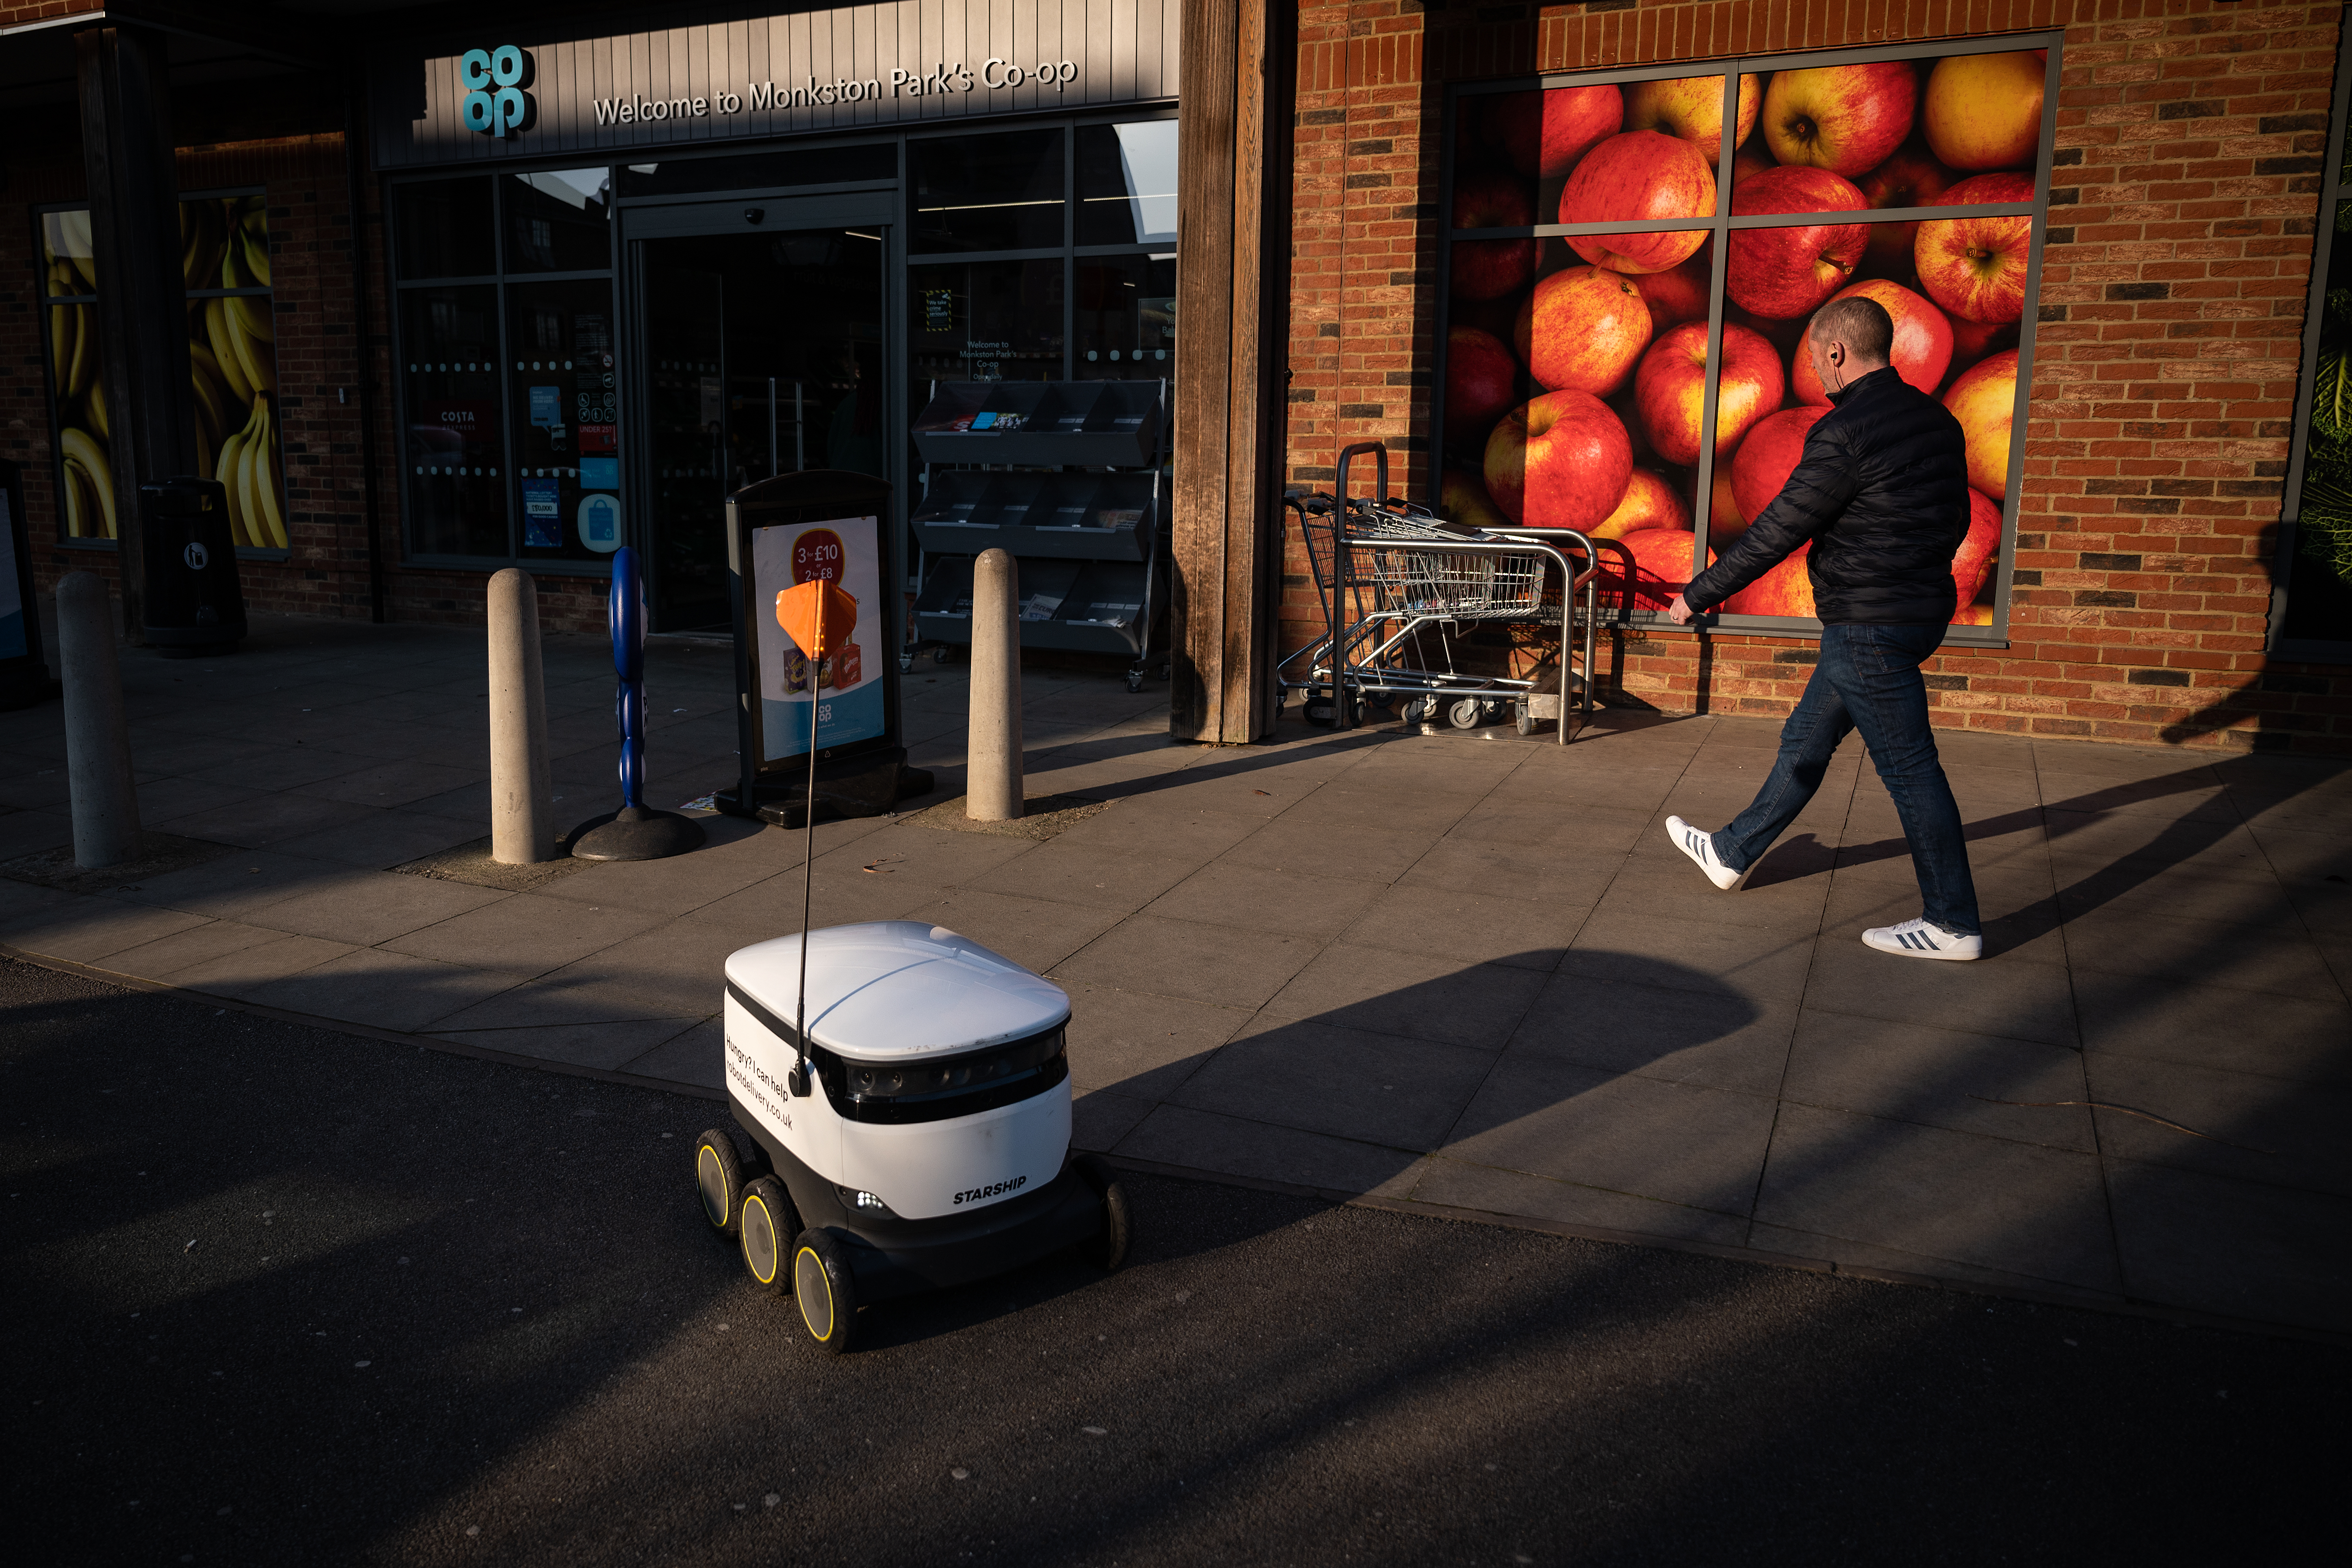 A delivery robot drives by a man walking.